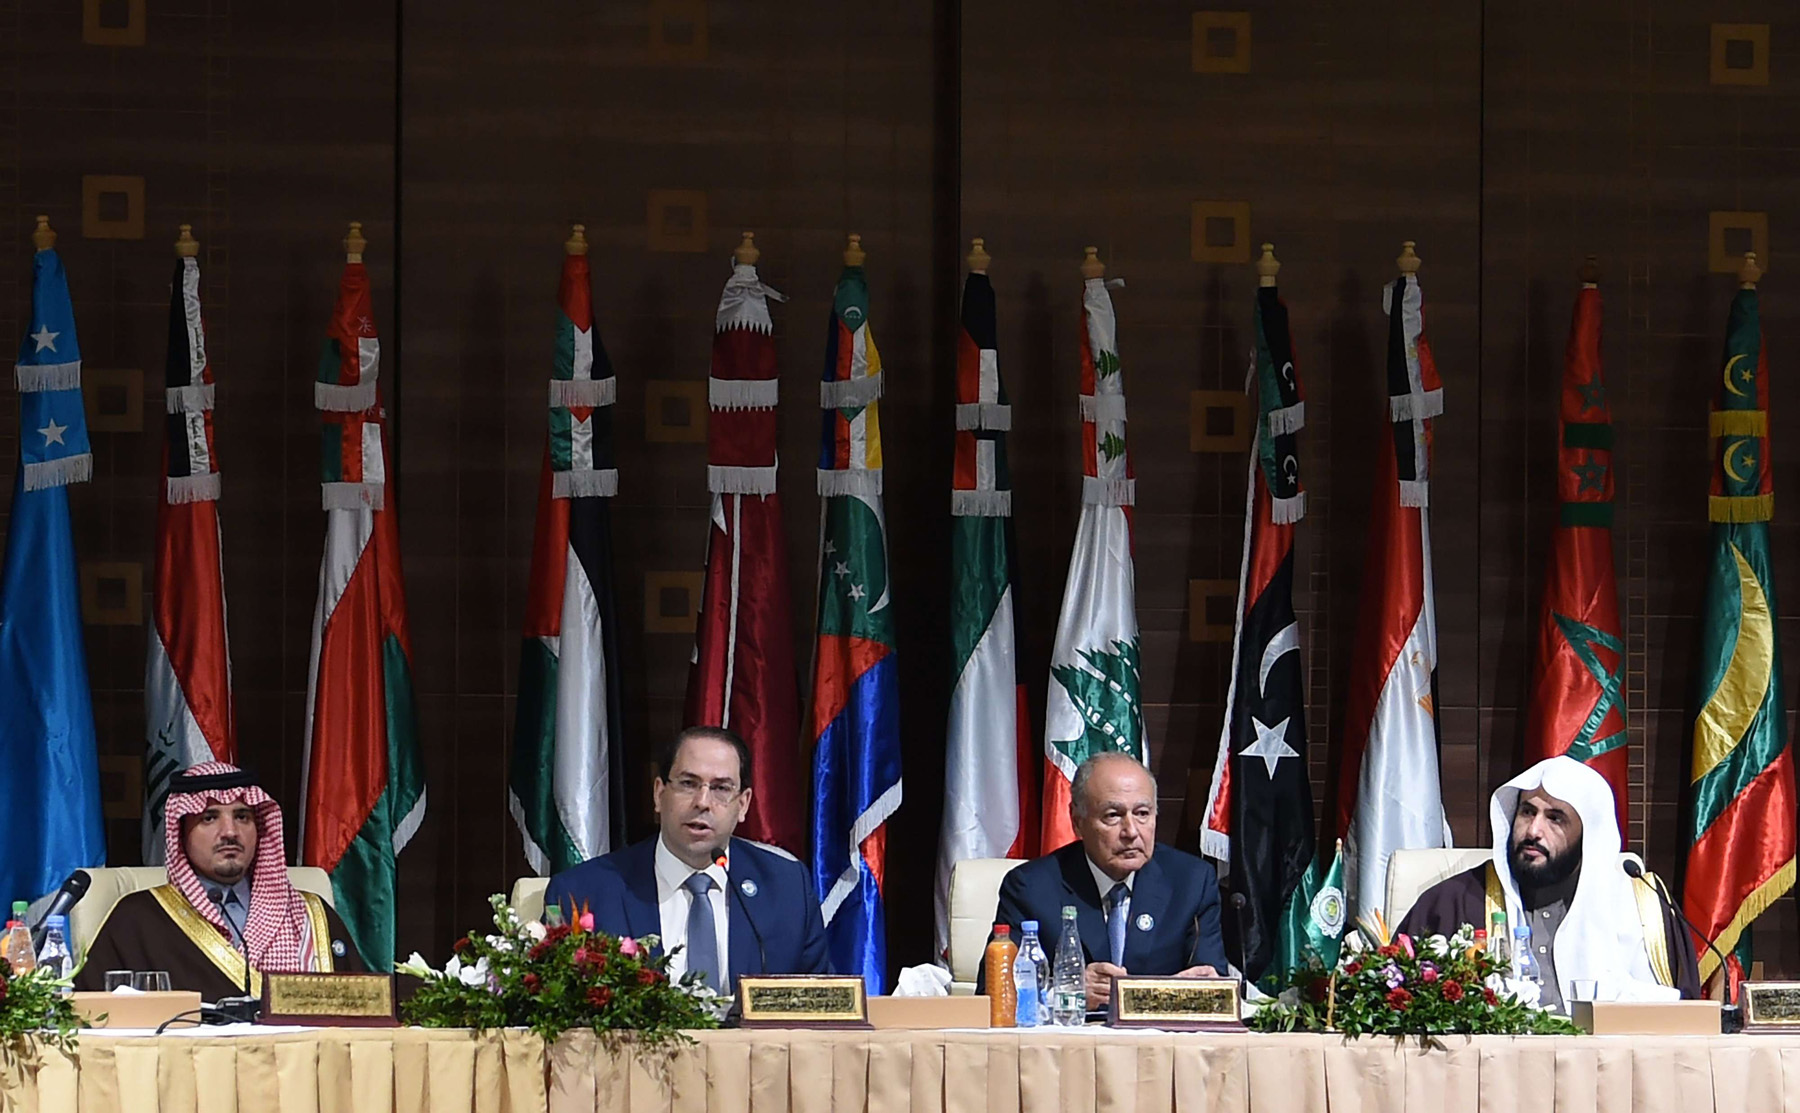 Tunisian Prime Minister Youssef Chahed (2nd-L) gives a speech during the opening session of a meeting of Arab Interior and Justice Ministers in the capital Tunis on March 4, 2019. (AFP)